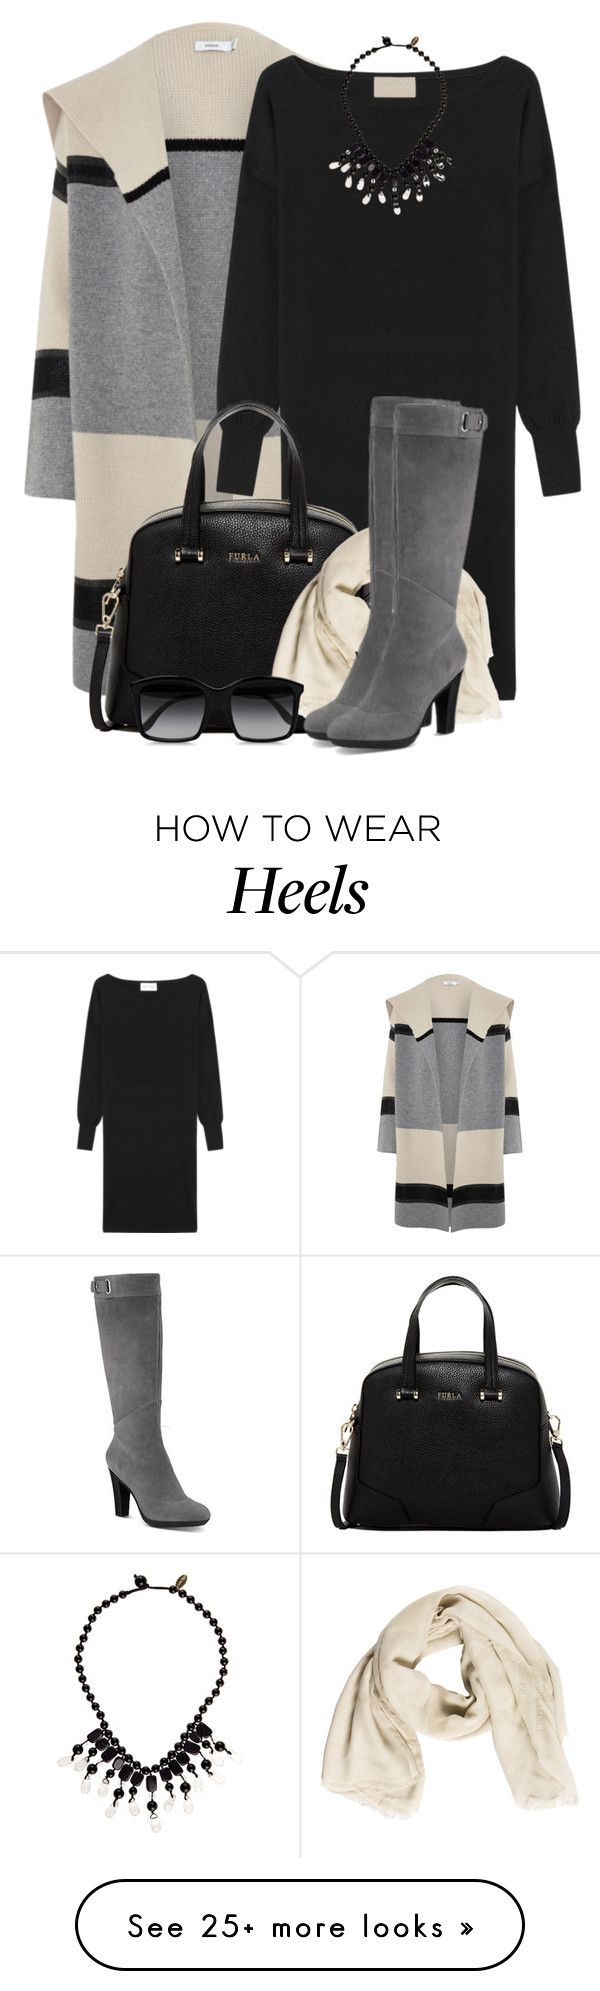 """Shawl Car Coat & Sweater Dress"" by brendariley-1 on Polyvore featuring Vince, American Vintage, Furla, Burberry, Tsubo, STELLA McCARTNEY, Monsoon, women's clothing, women and female"